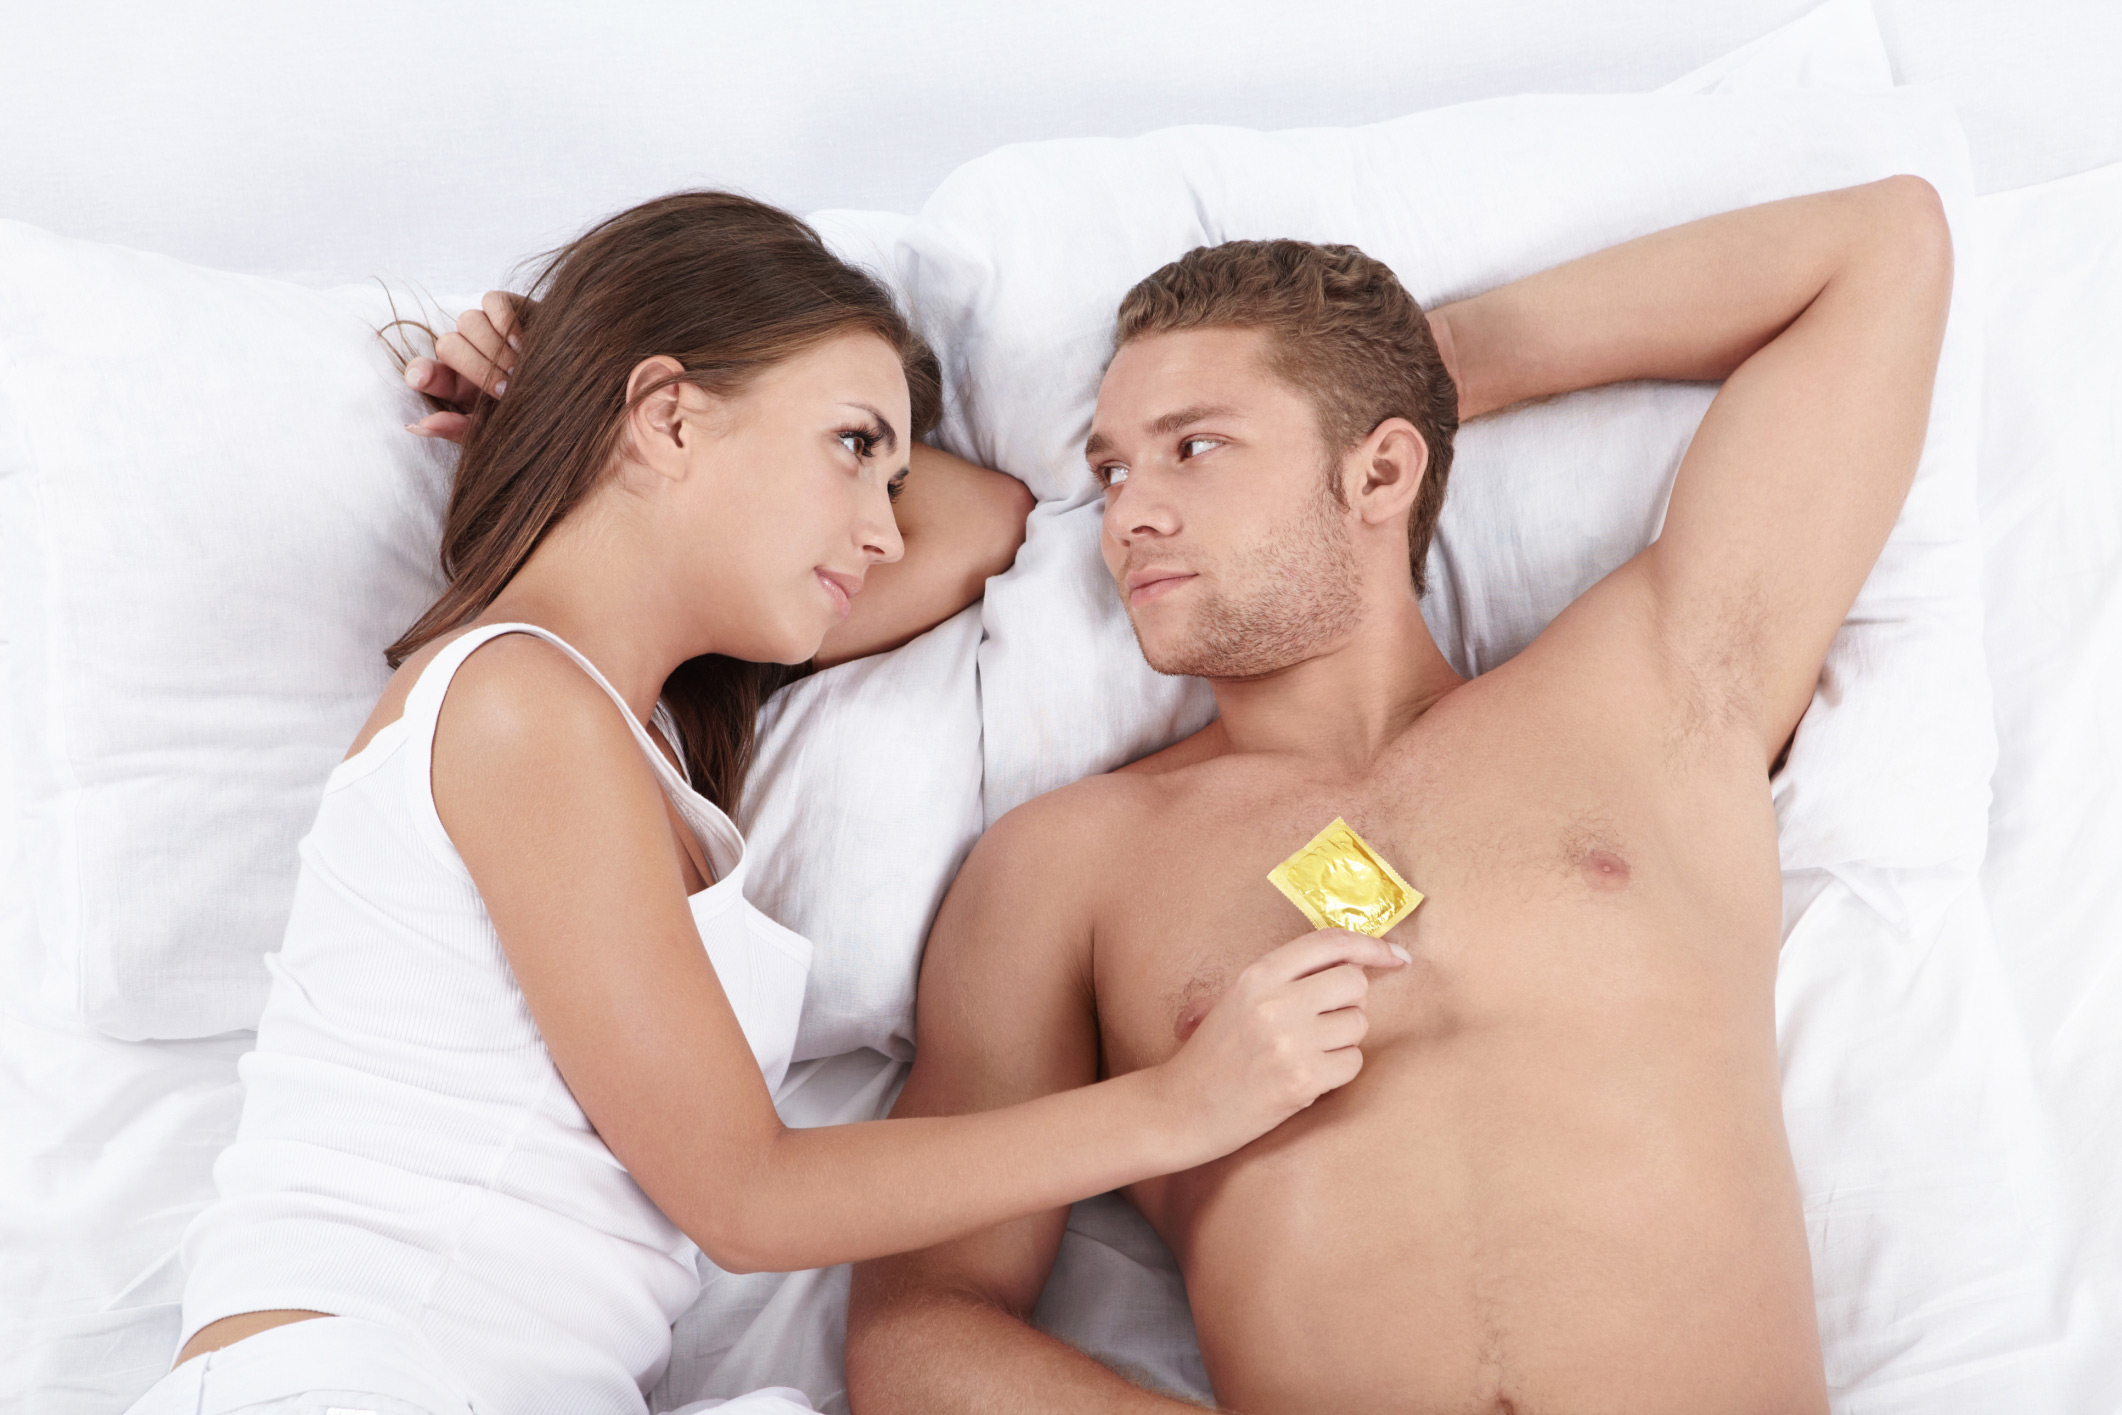 man and woman in bed with condom